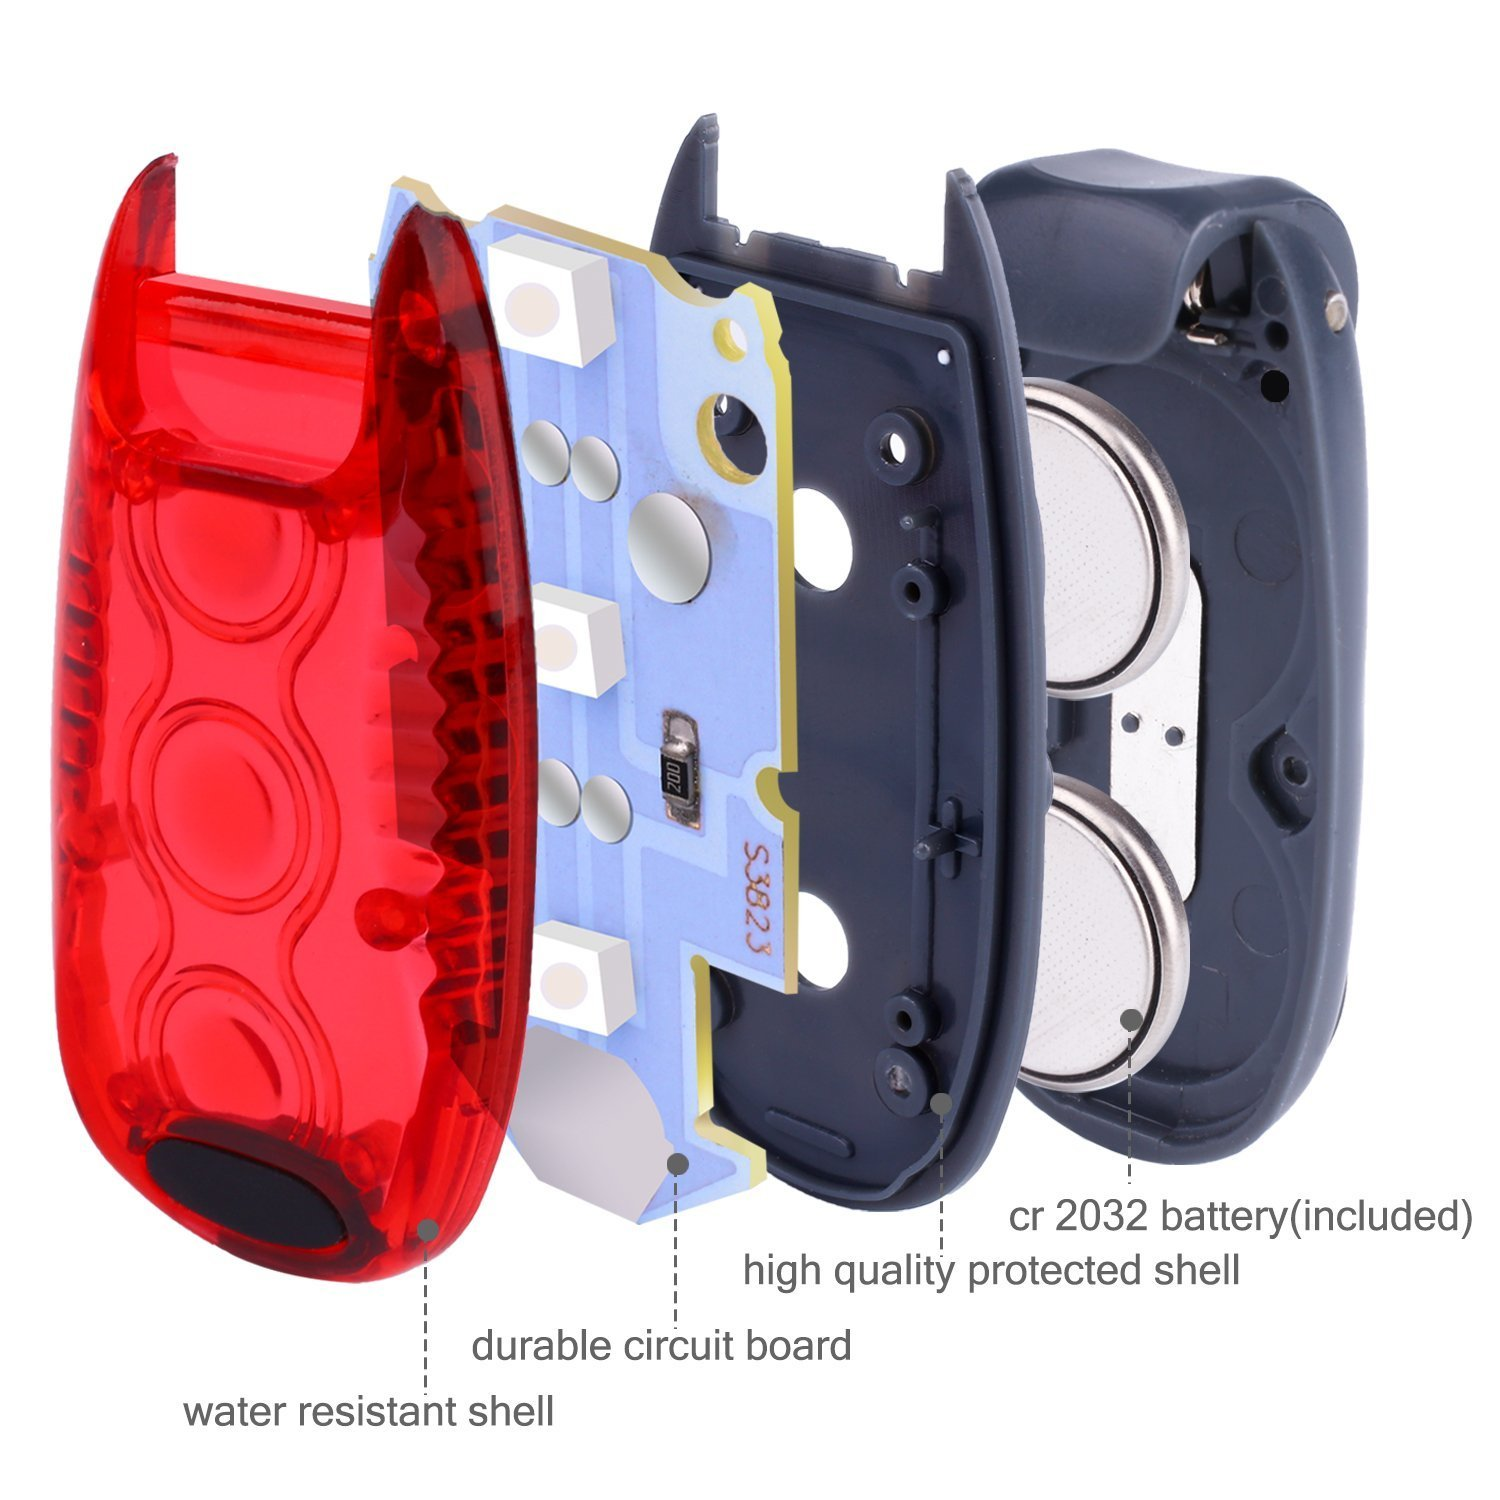 Dogs Walking Cycling Vimmor 3 Pcs LED Safety Lights 3 Modes Clip on Strobe//Running Light//Waterproof Bike Rear Tail Light//Flashing Dog Collar with Clip on Velcro Straps for Running Helmet etc